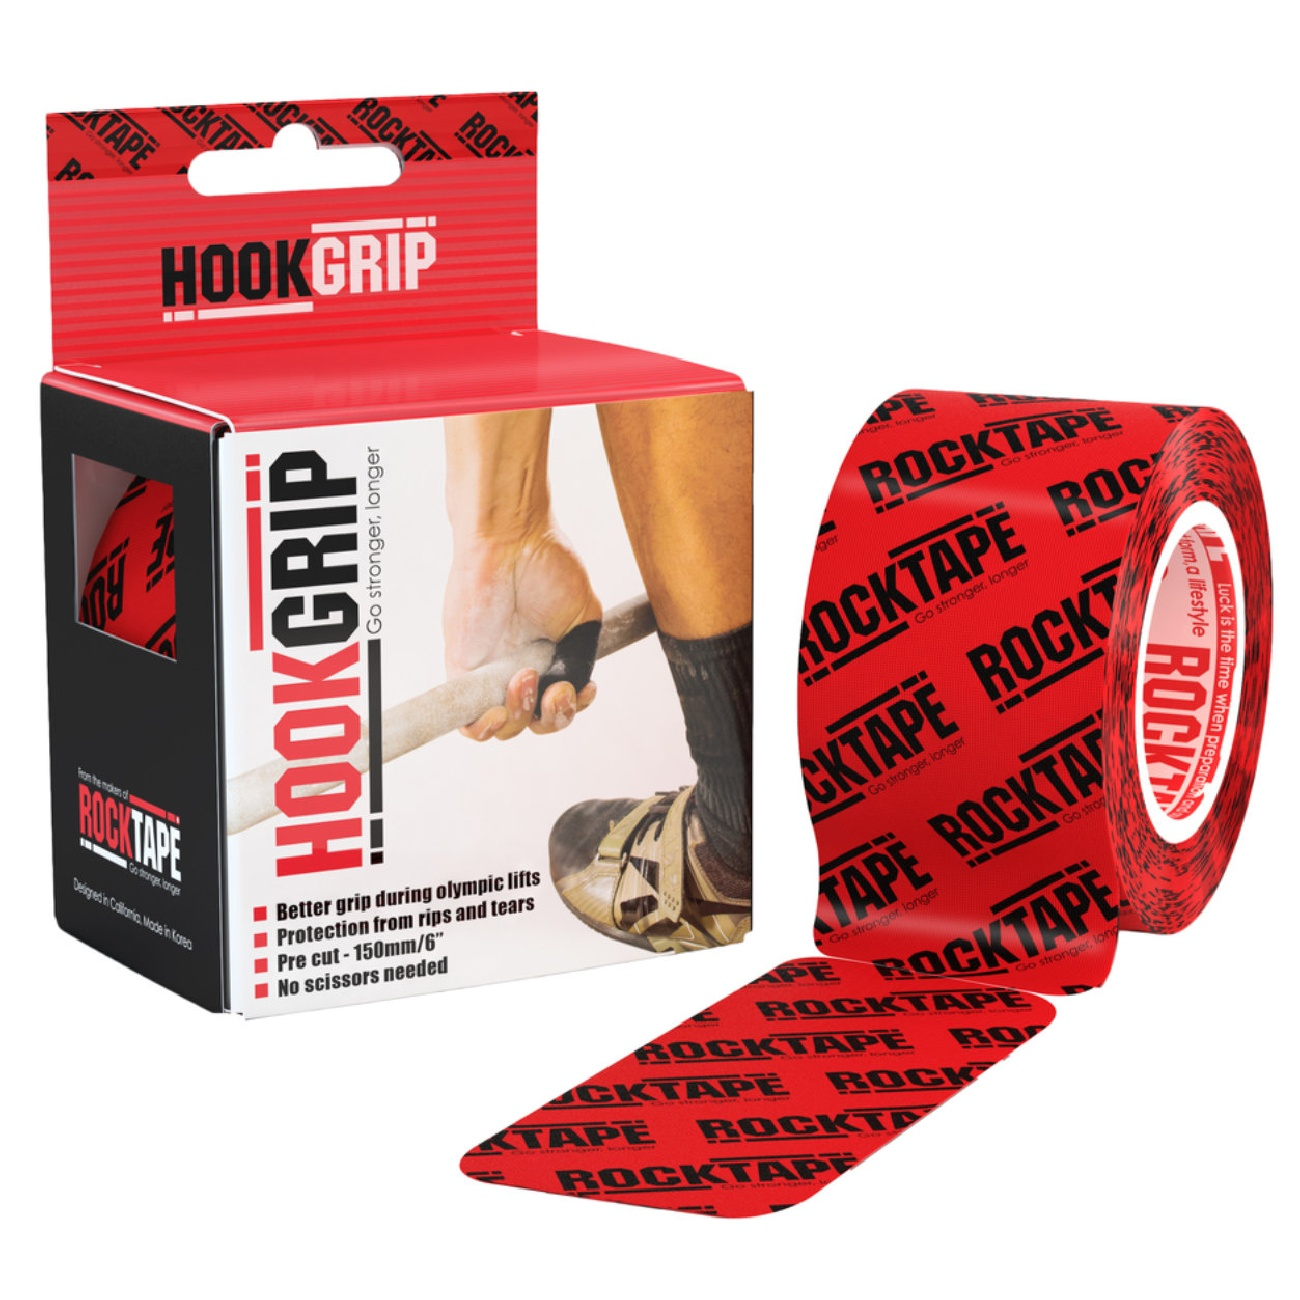 RockTape HookGrip Tape for Thumbs